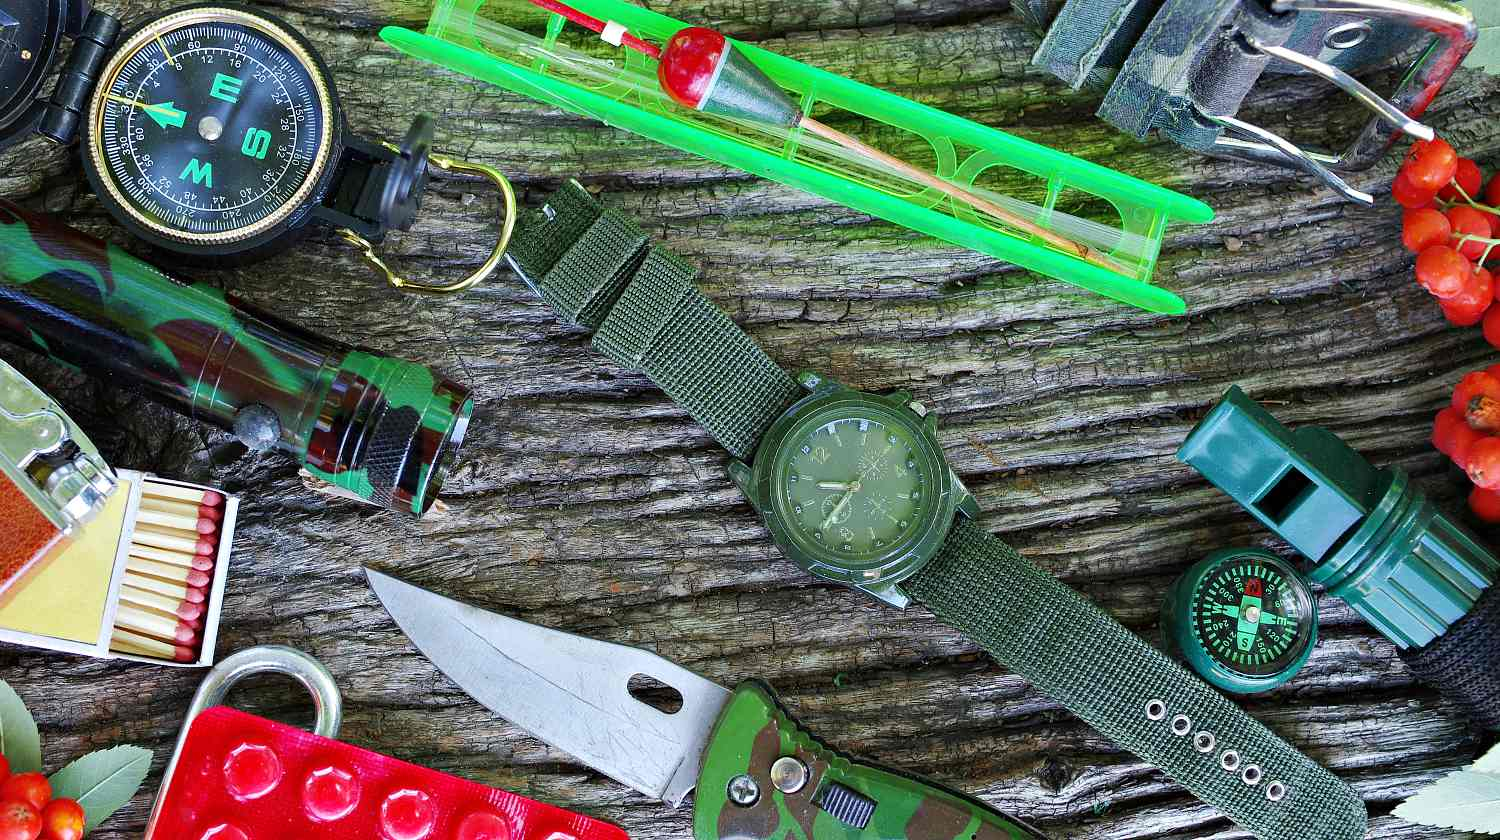 Feature | Survival kit | Essential Items For New Preppers [Video]